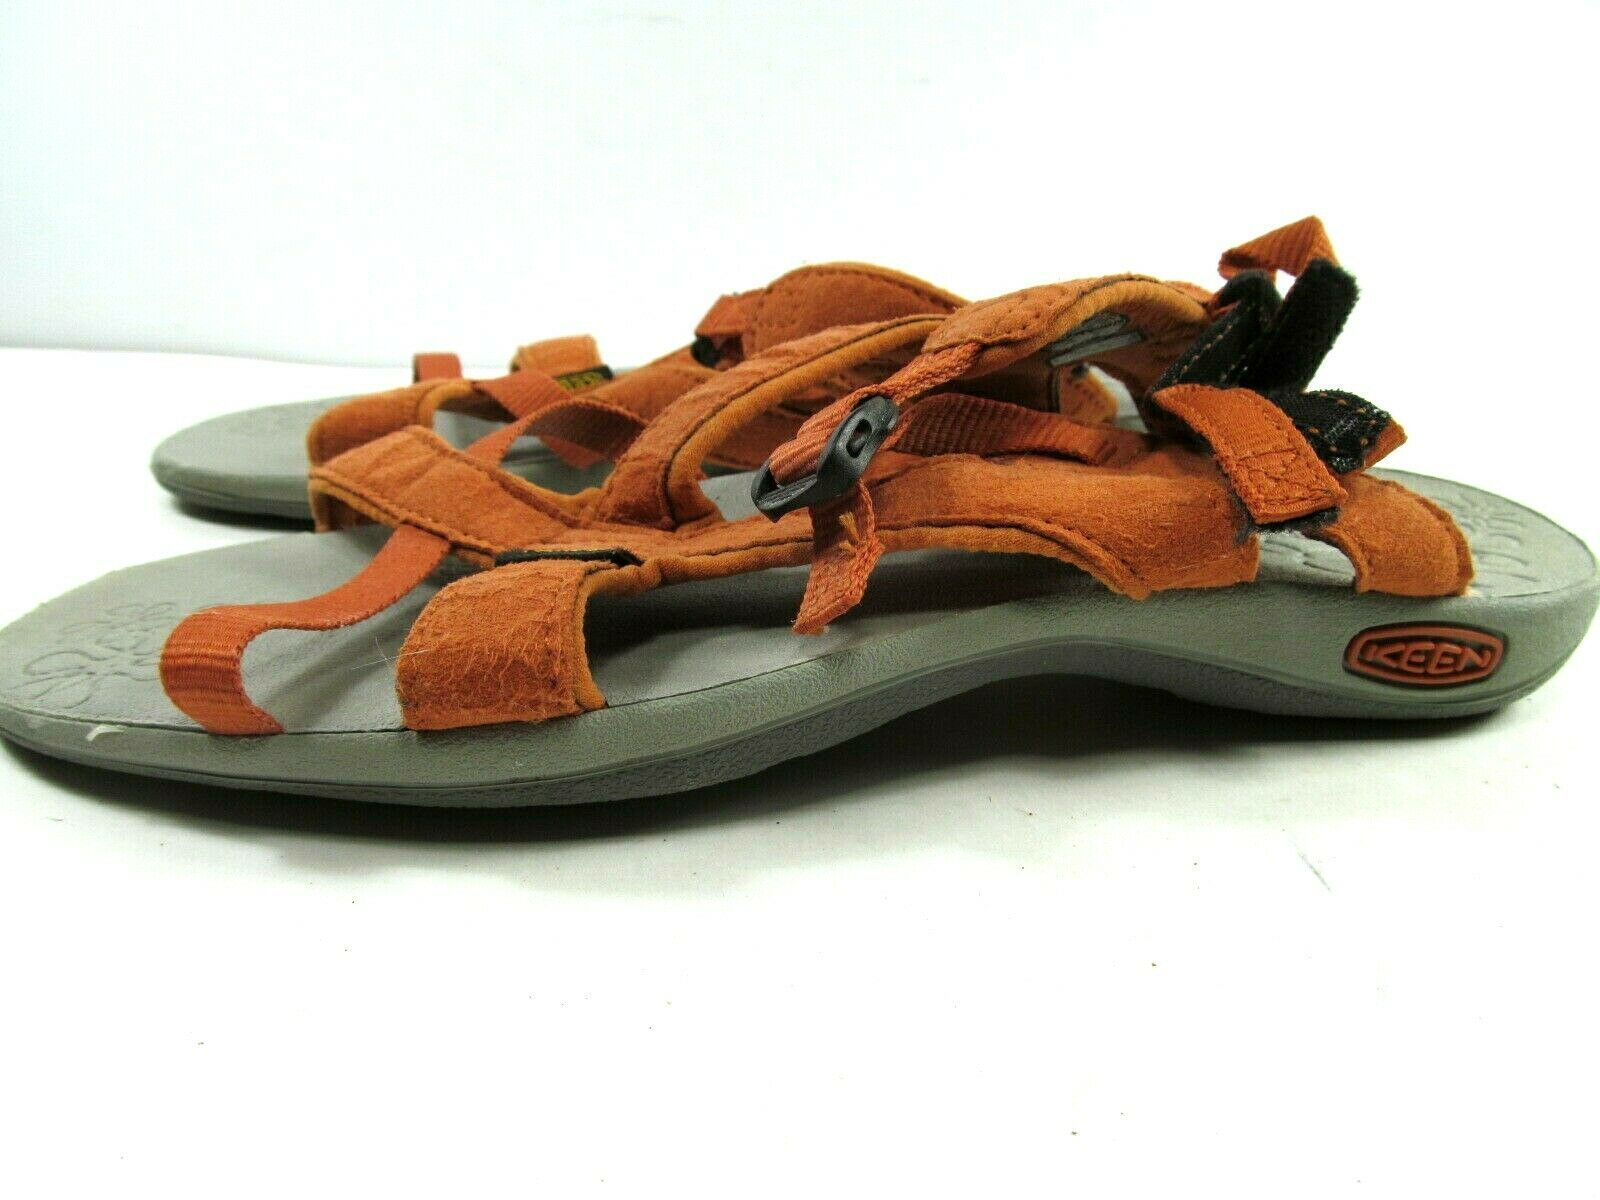 Keen Womens Orange Strappy Ankle Strap Sandals Size US 7.5  EUR 38 image 5